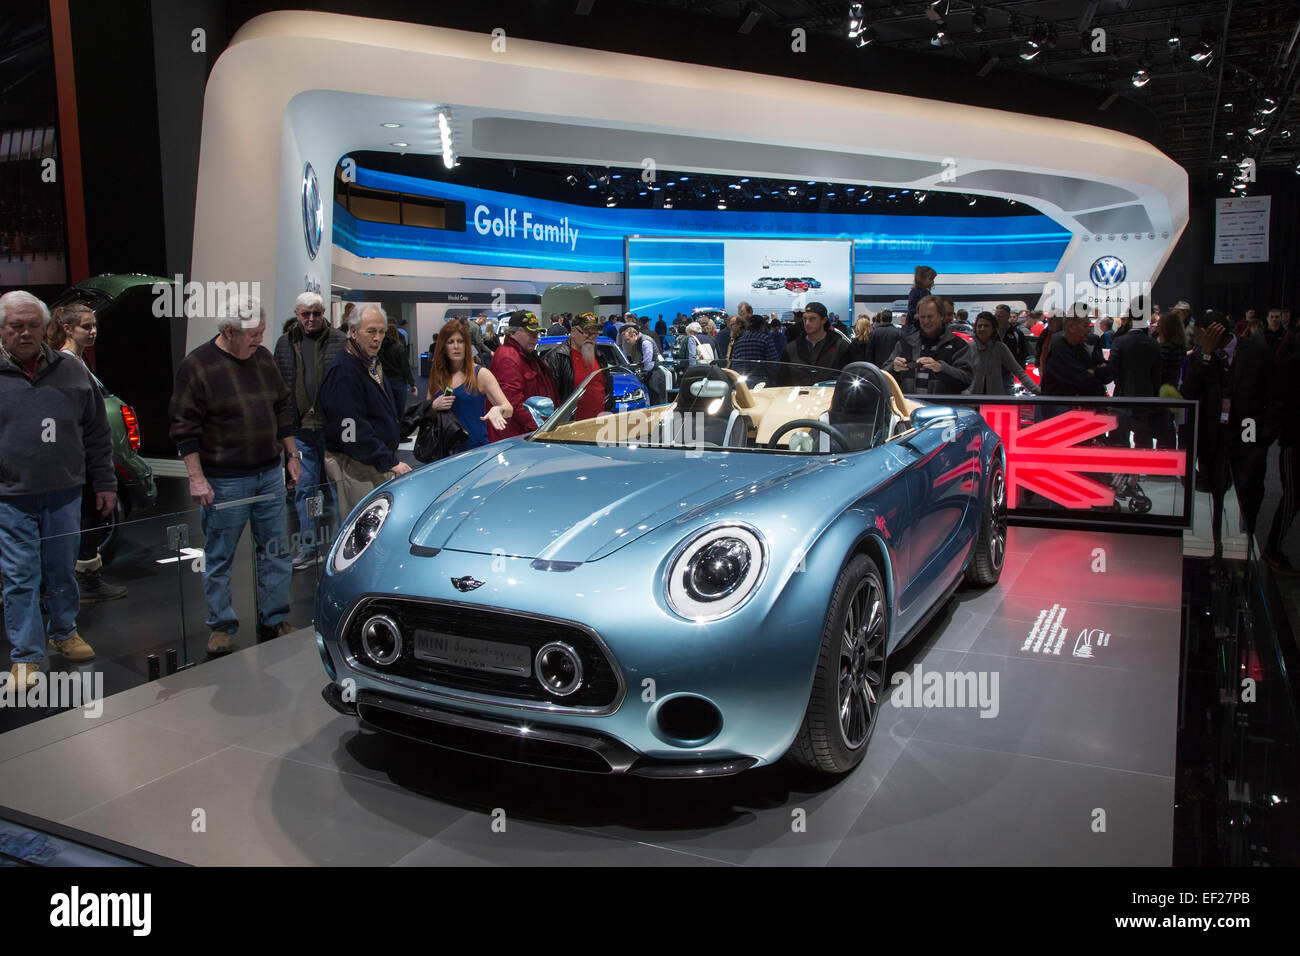 Detroit, Michigan - BMW's Mini Superleggera Vision concept car on display at the North American International - Stock Image